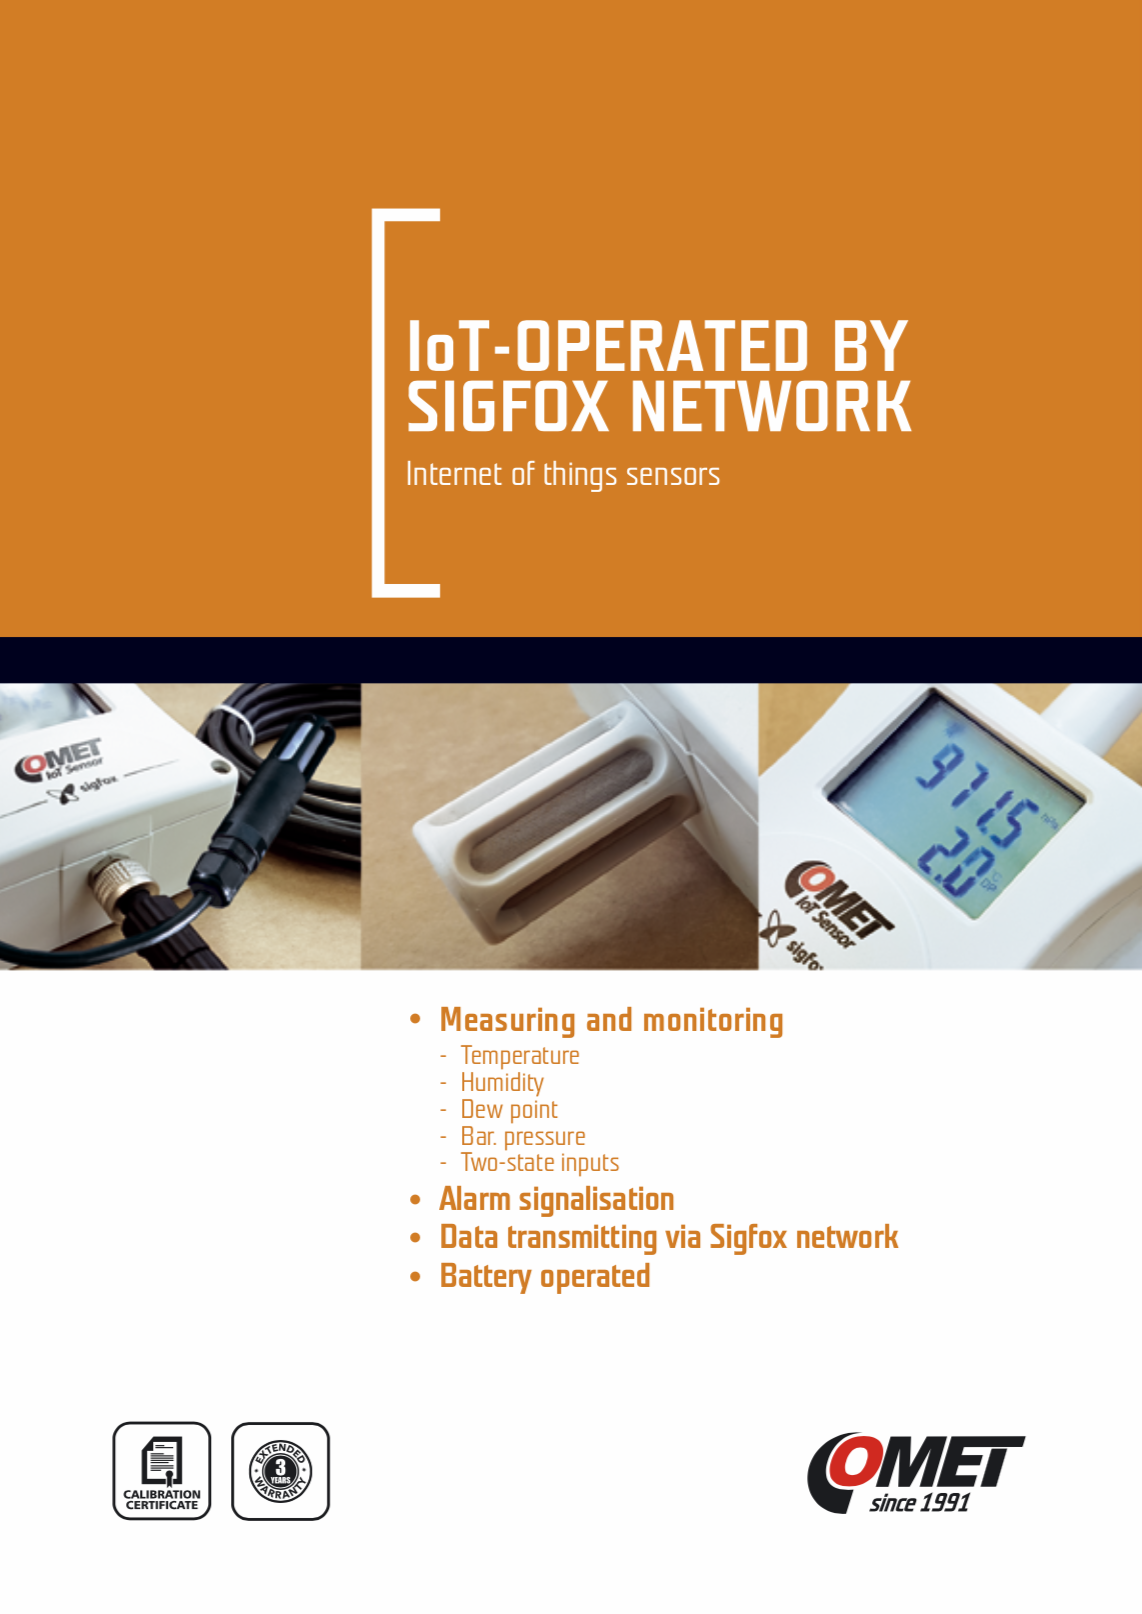 Comet IoT - Operated by Sigfox Network 2018